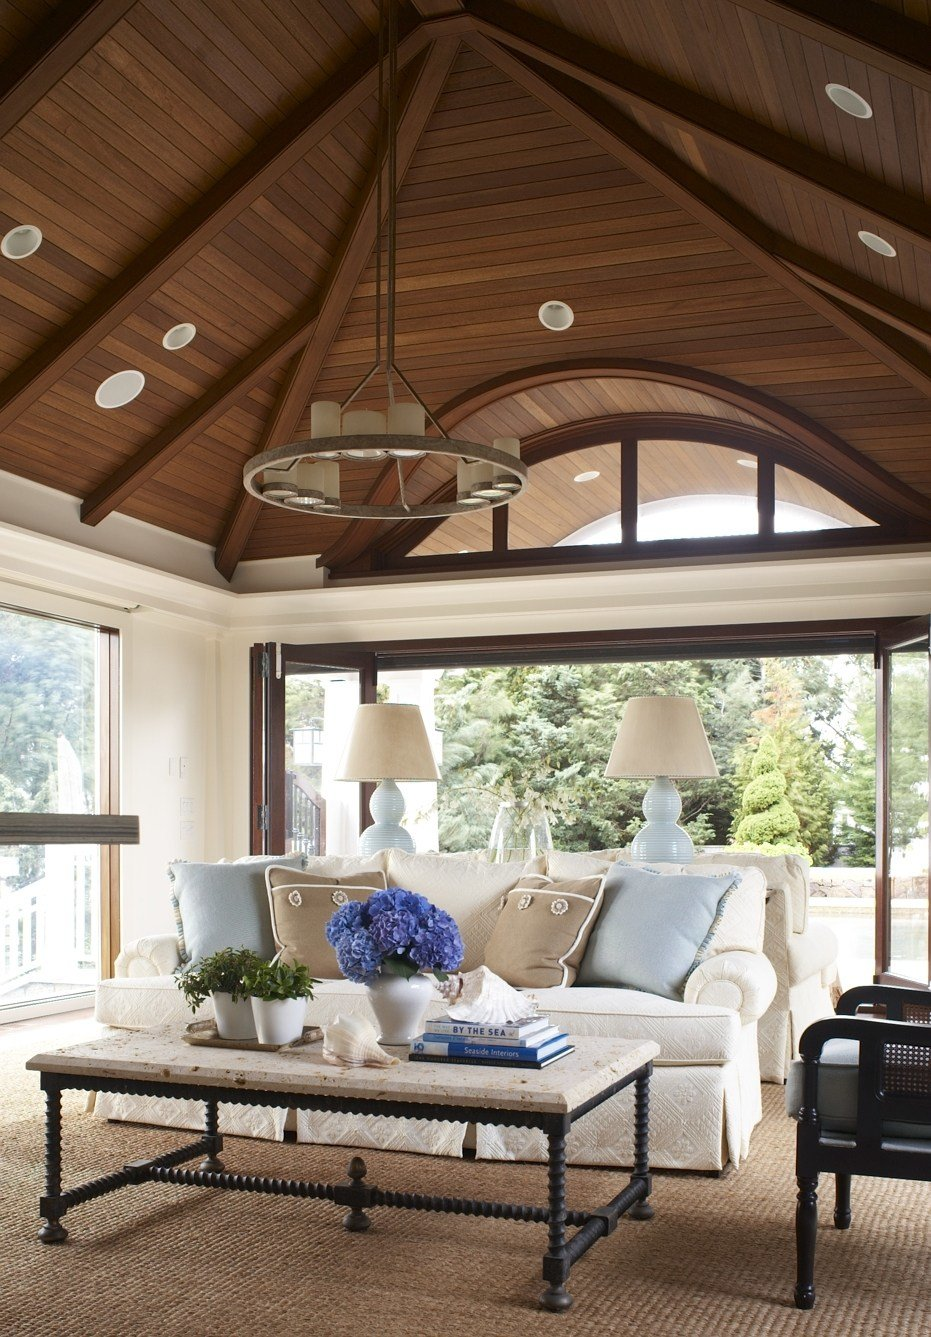 Best The Ultimate Outdoor Room On Cape Cod Stacystyle S Blog With Pictures